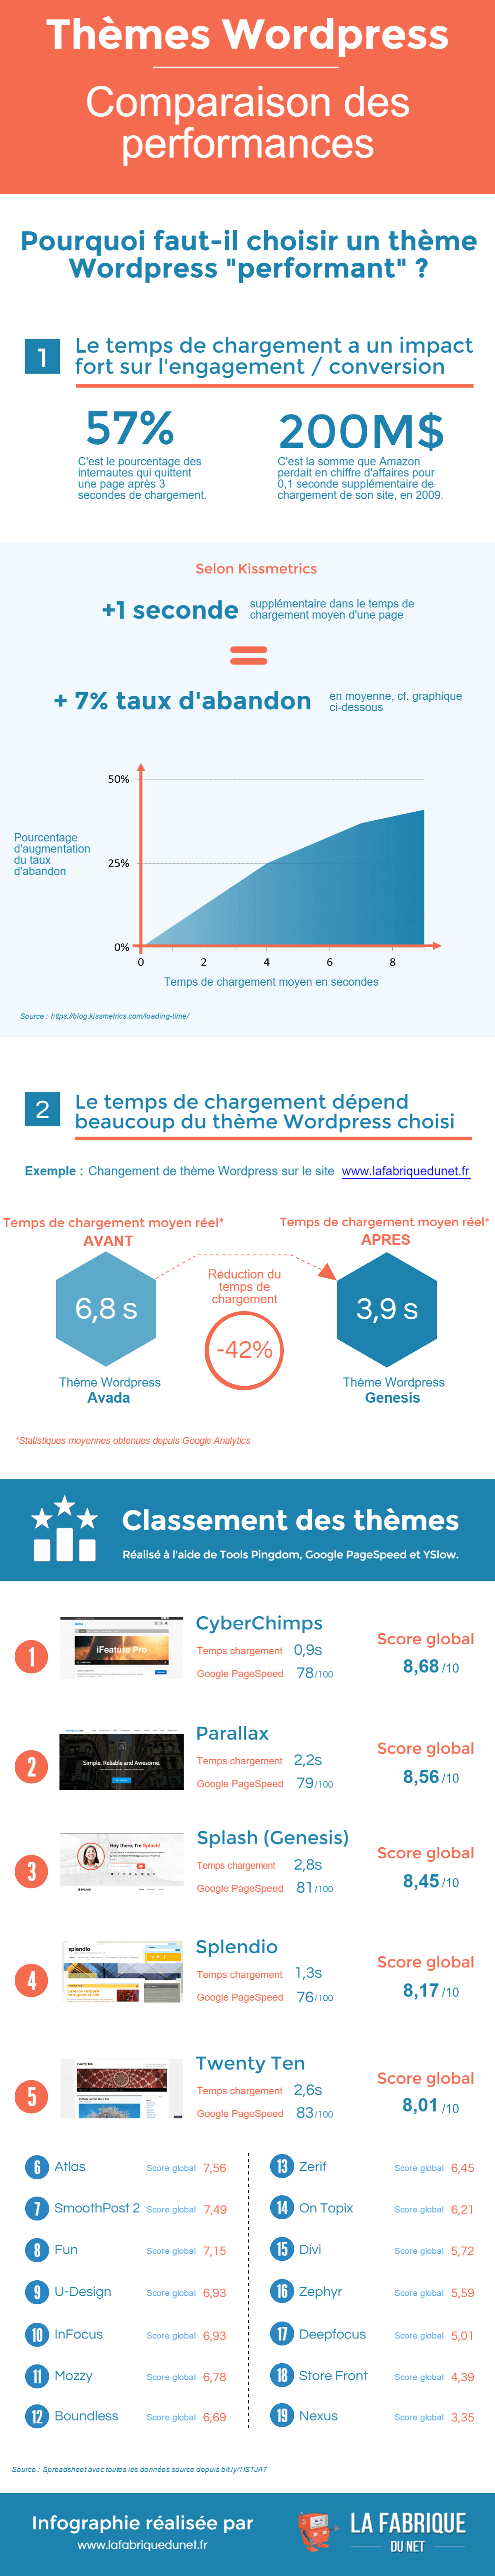 choix-theme-wordpress-performances